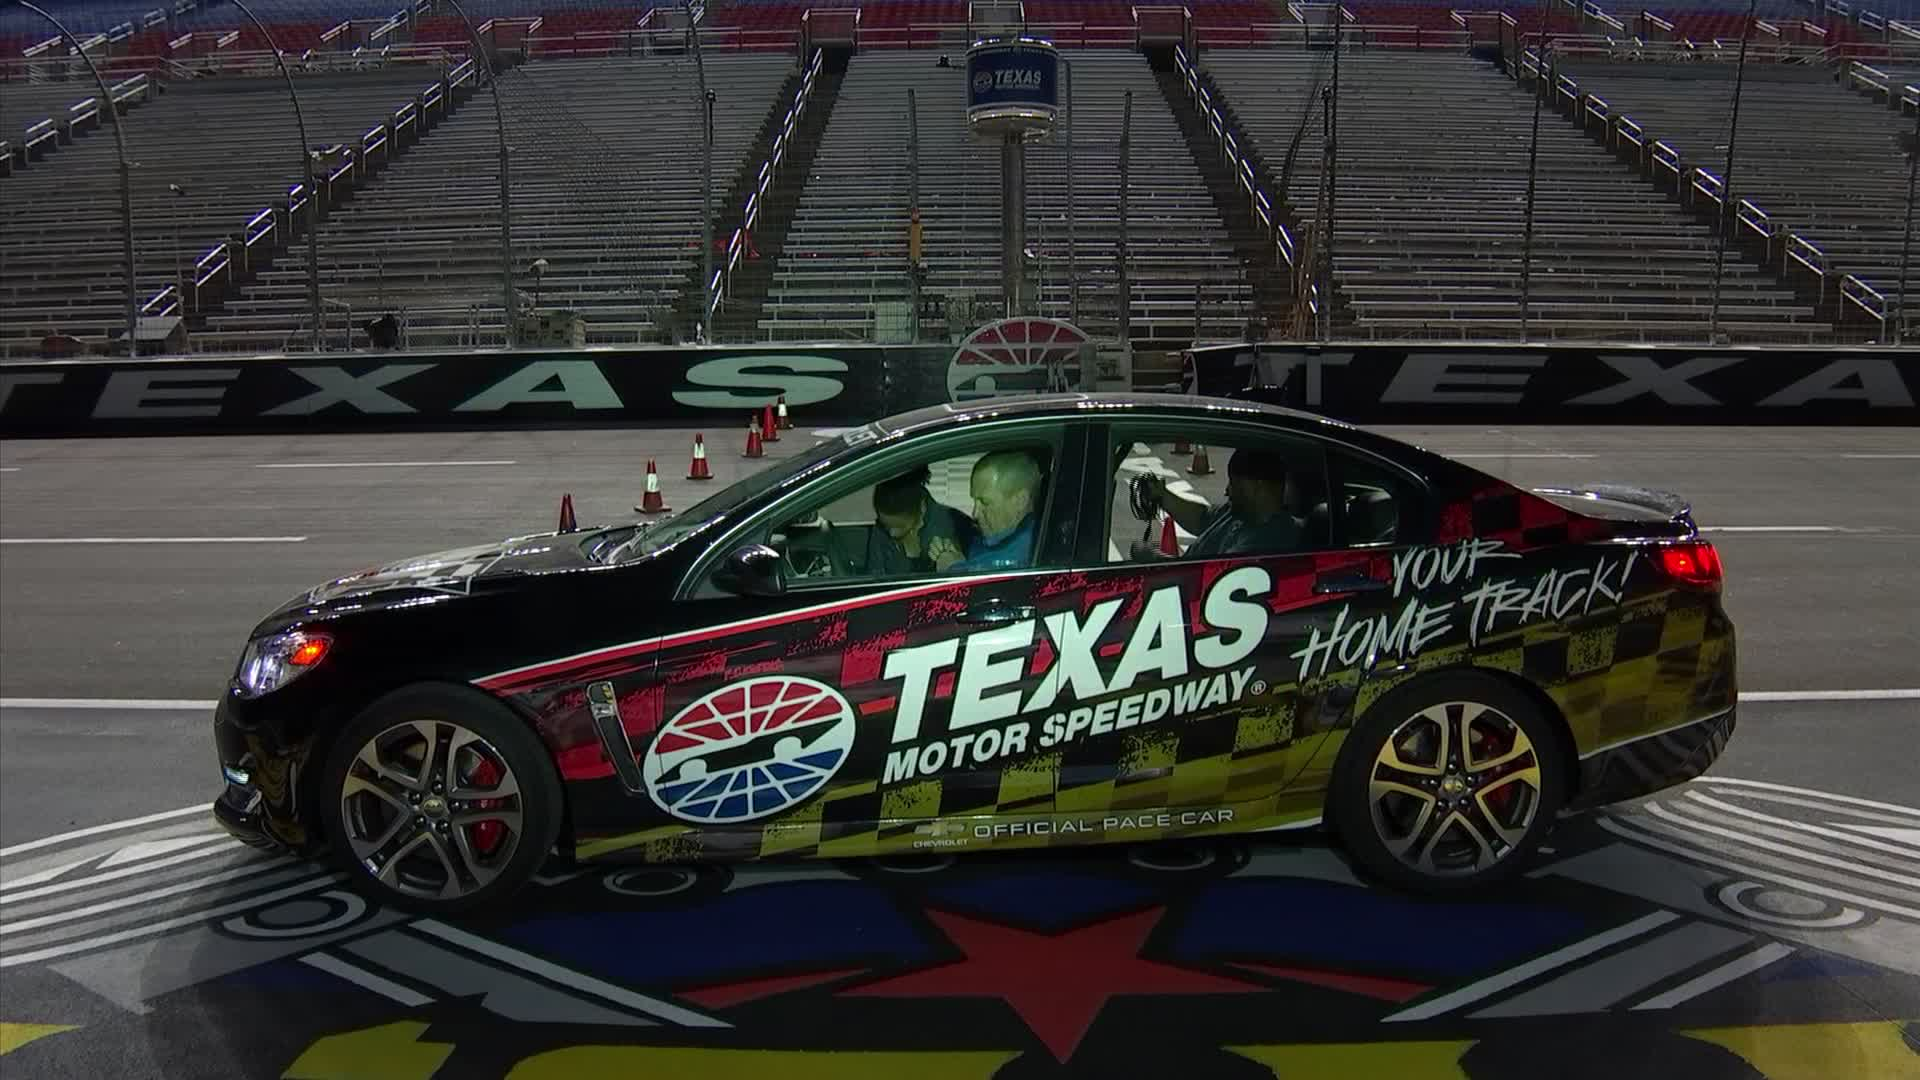 O 39 reilly 500 revs up at texas motor speedway dallas news for Nascar tickets for texas motor speedway